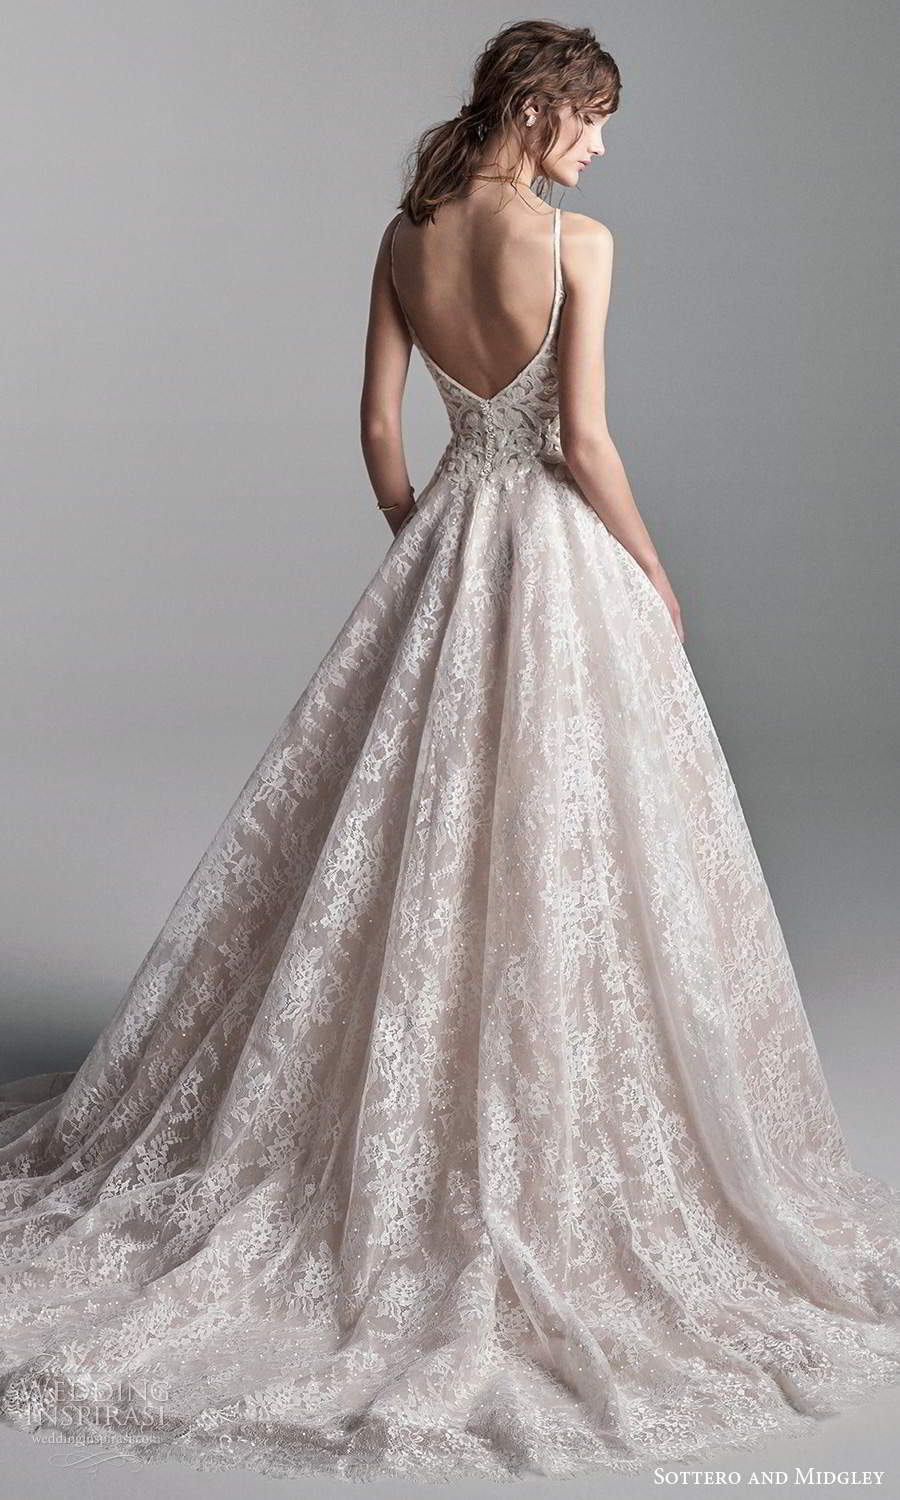 sottero midgley fall 2020 bridal sleeveless straps plunging v neckline fully embellished lace a line ball gown wedding dress chapel train blush (8) bv